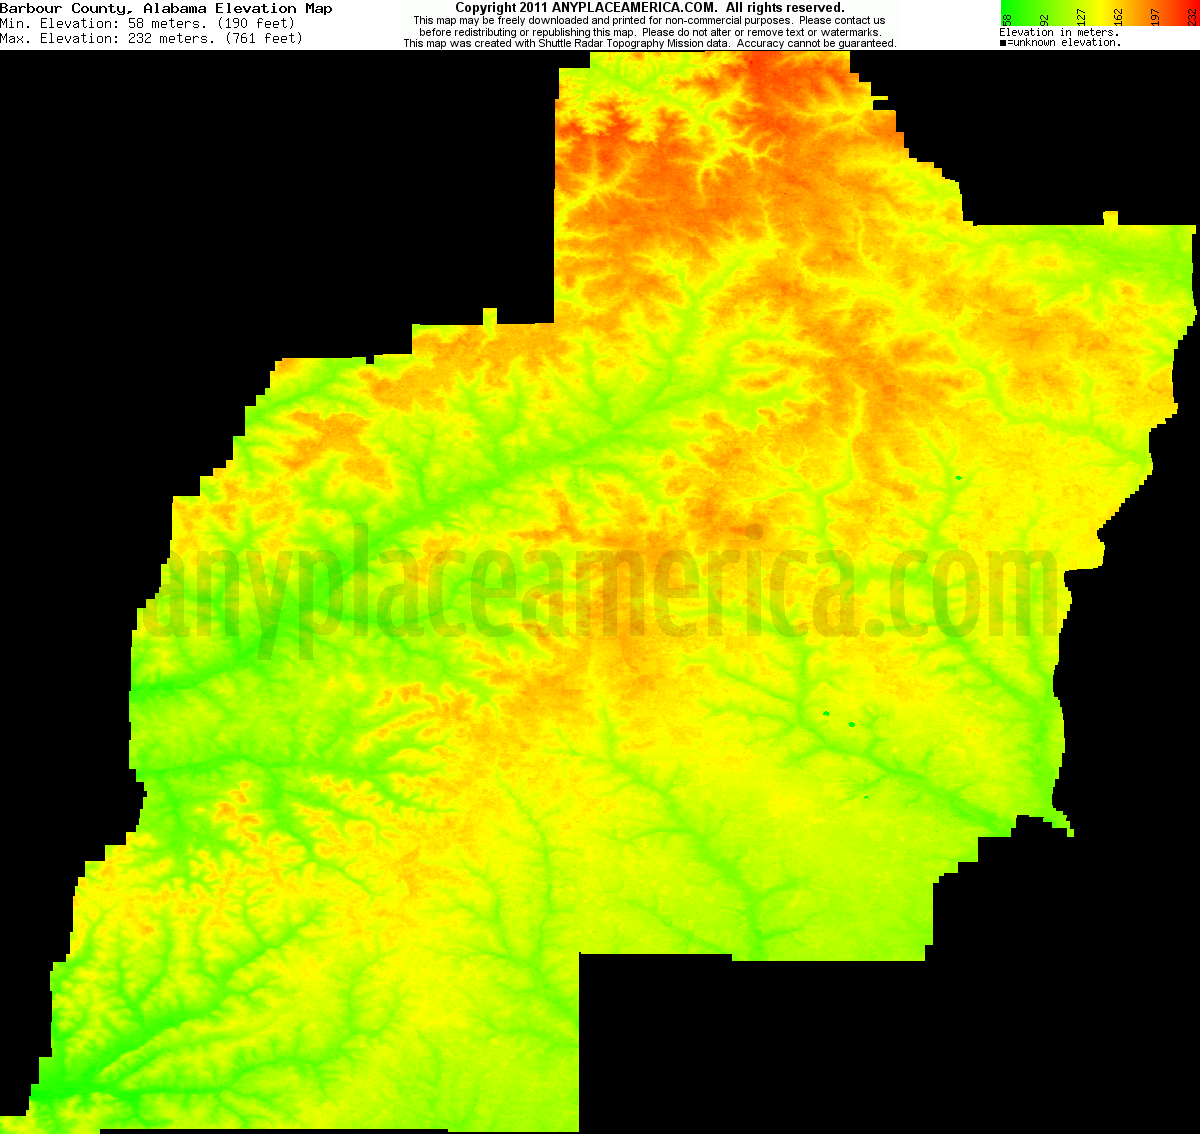 Free Barbour County Alabama Topo Maps Elevations